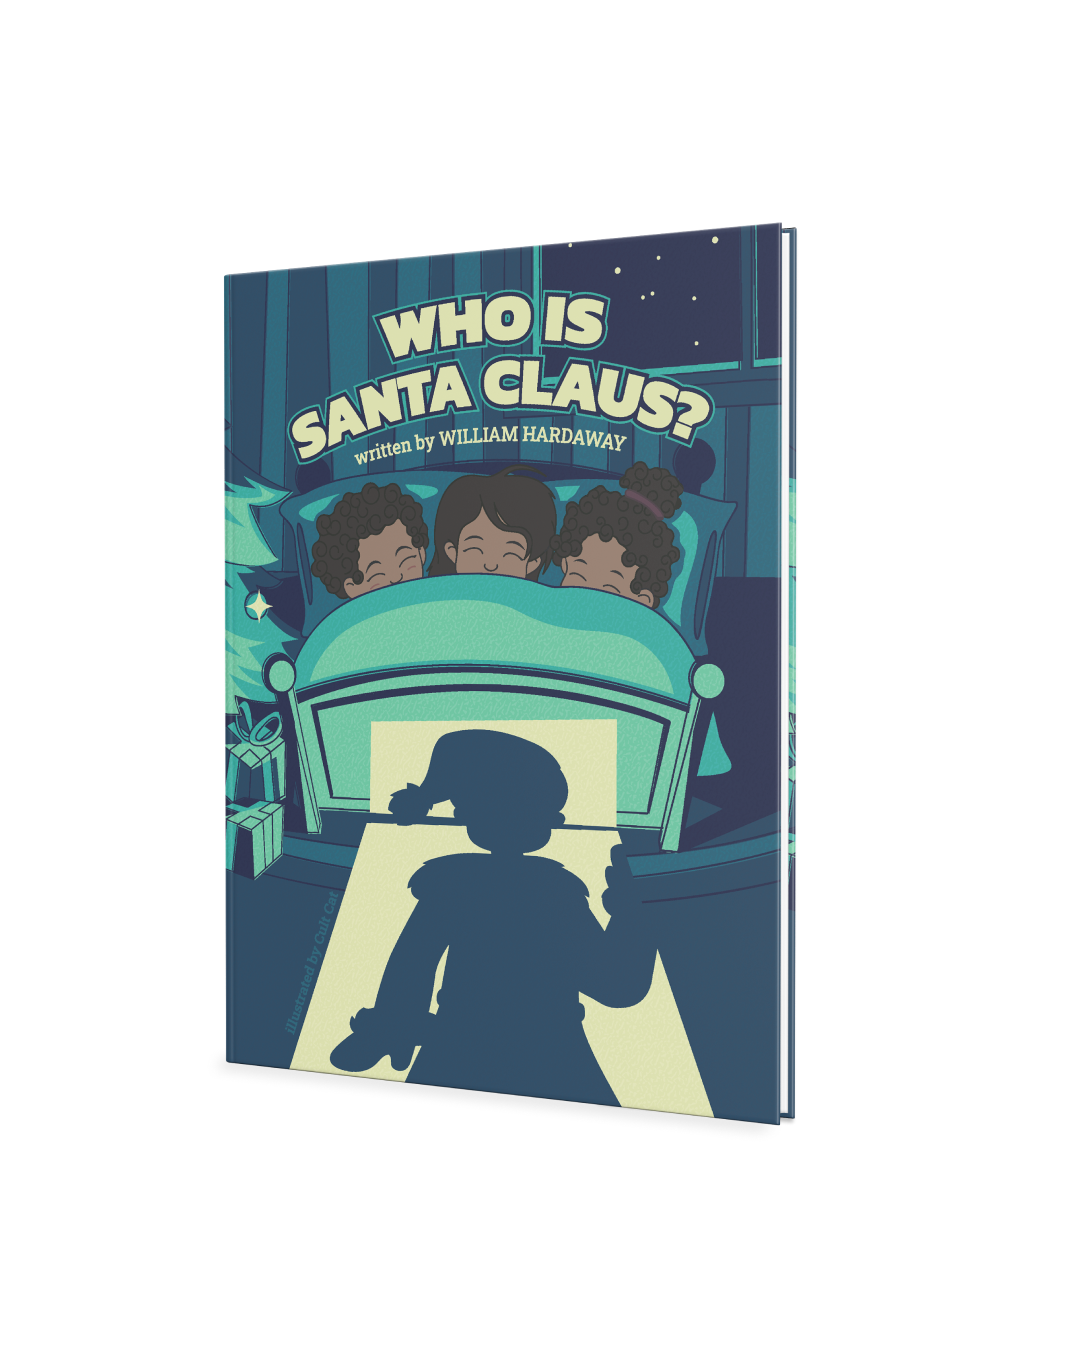 Picture of the Who Is Santa Claus book.